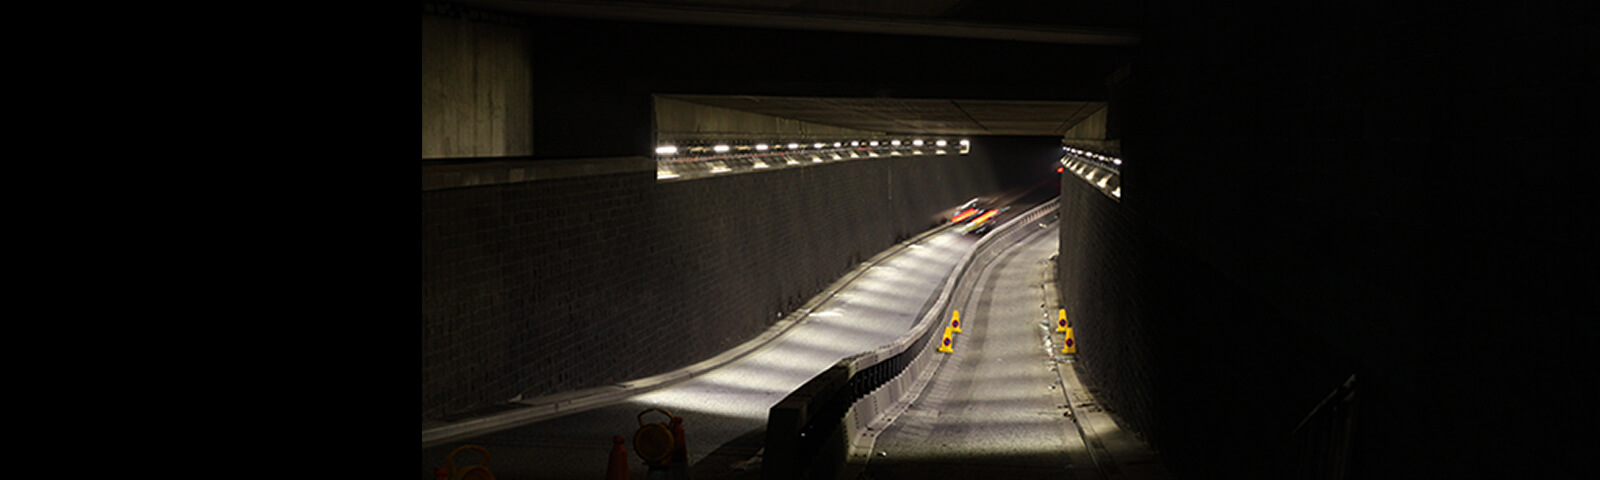 A404 Harrow Road Underpass  gallery image